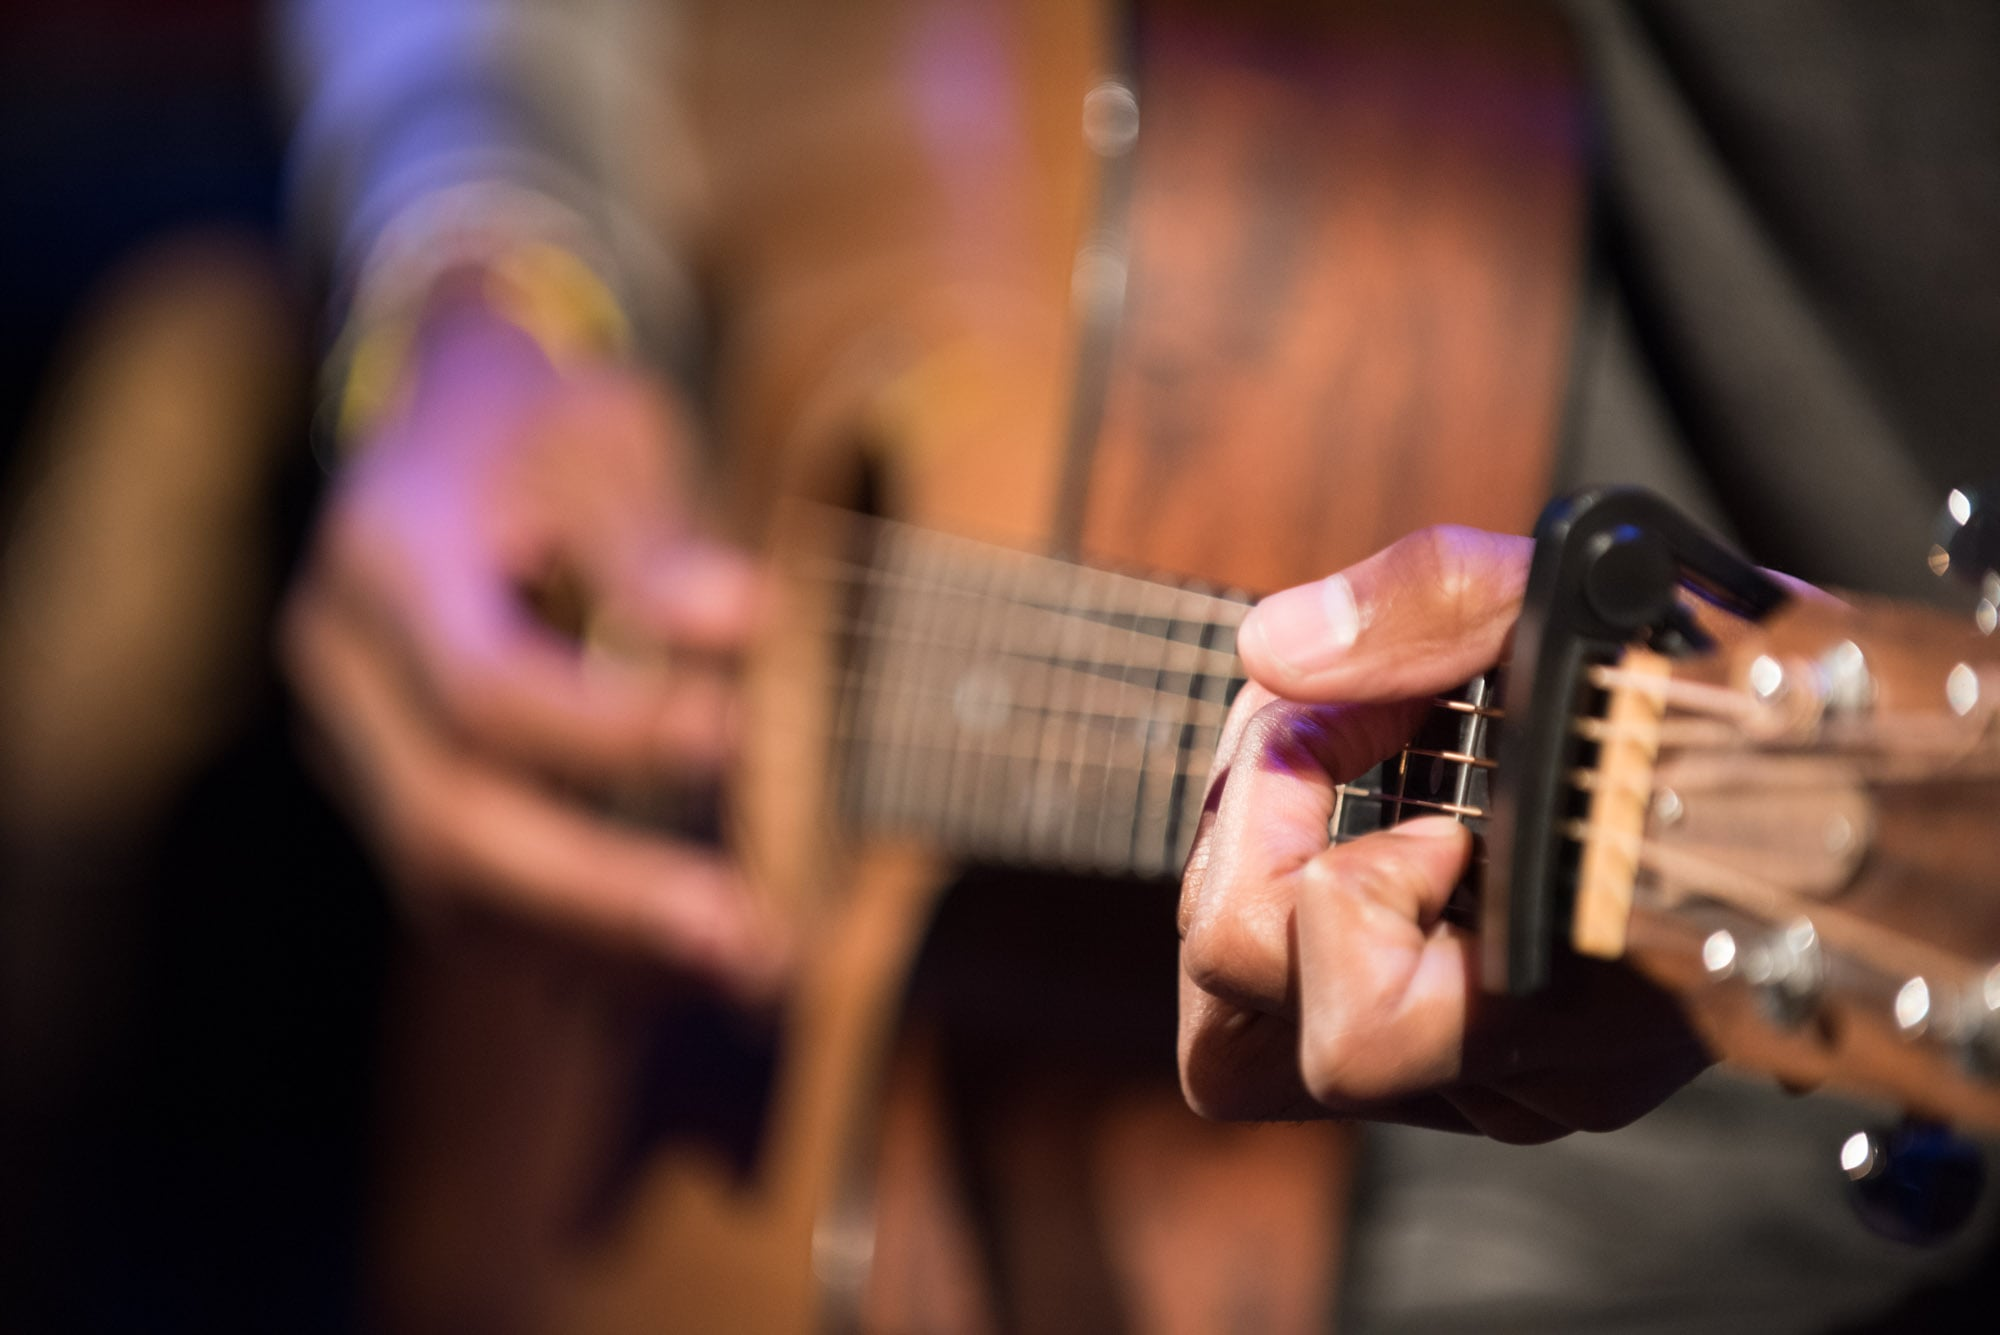 The incredible fingers of Emmett Skyy at his roll out concert live at the Grammy Museum at LA Live